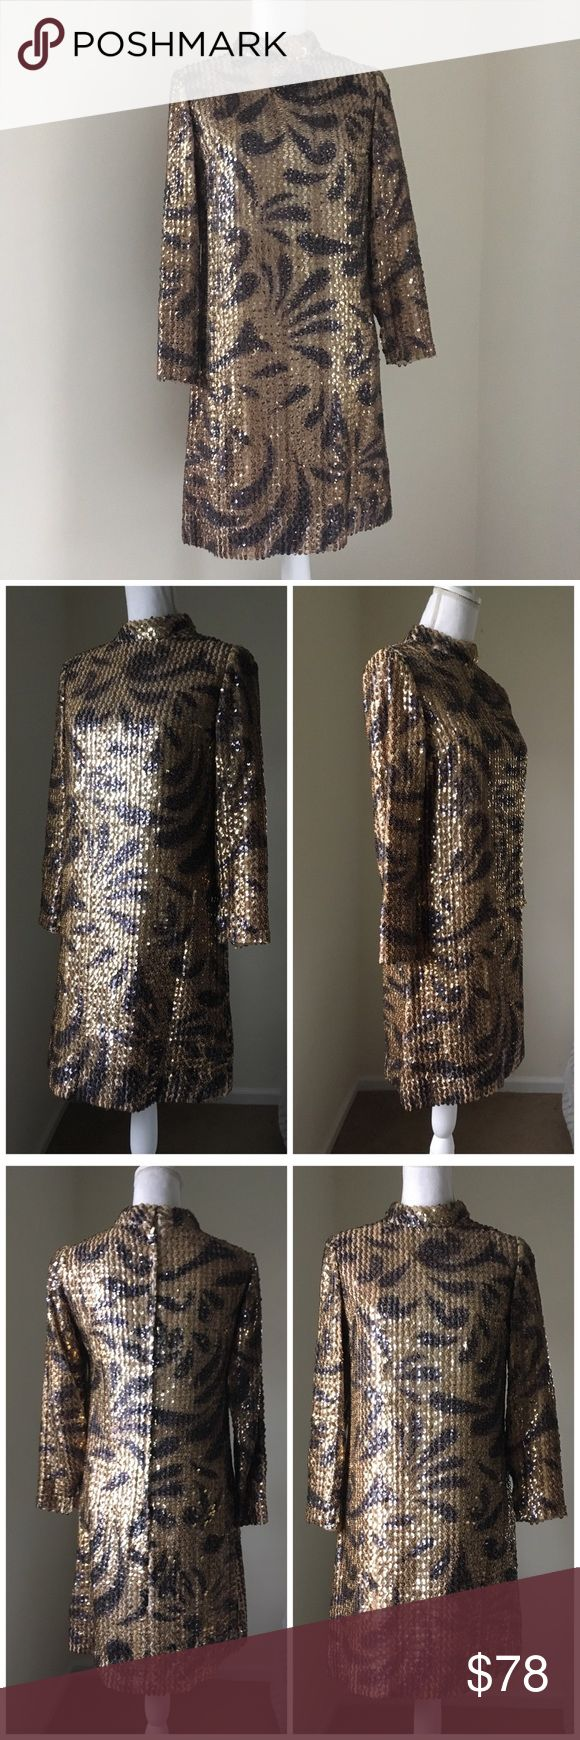 """Vintage gold and black Sequin tiger print Dress Vintage gold and black Sequin tiger print Shift Dress ~4. Absolutely gorgeous and unique ILGWU made Sequined cocktail Shift Dress. In very good vintage condition with a few inconspicuous sequins missing. Zip back.  Approximate Measurements:  17.25"""" armpit to armpit, 17"""" across waist, 35.5"""" long, 21.5"""" sleeves, 14.75"""" Shoulder to Shoulder. Vintage Dresses Long Sleeve"""